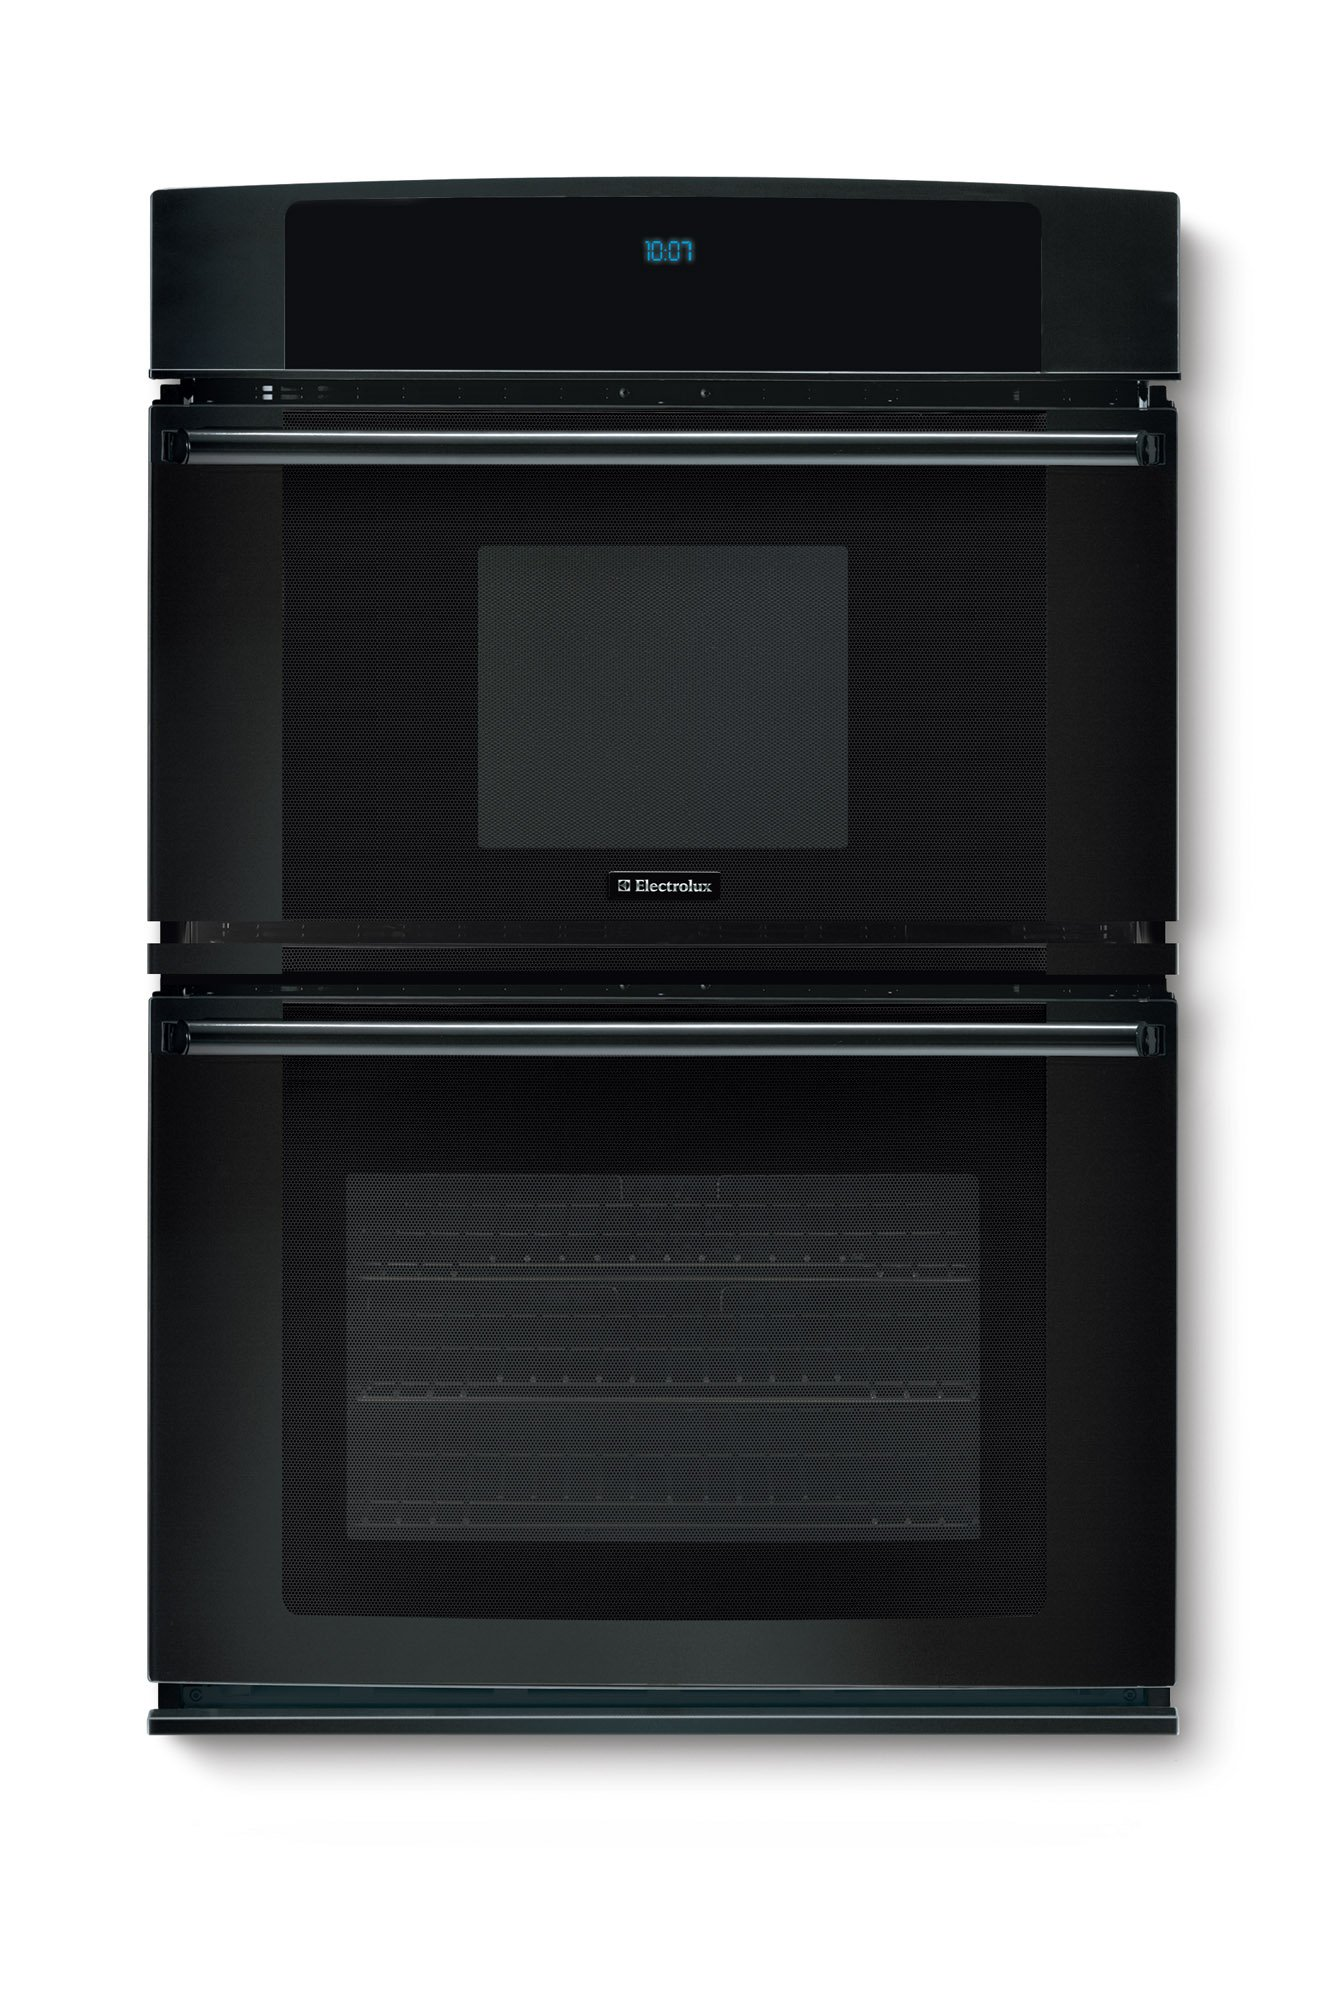 Get Quotations Electrolux Ew27mc65jb 27 Wall Oven And Microwave Combination With Wave Touch Controls